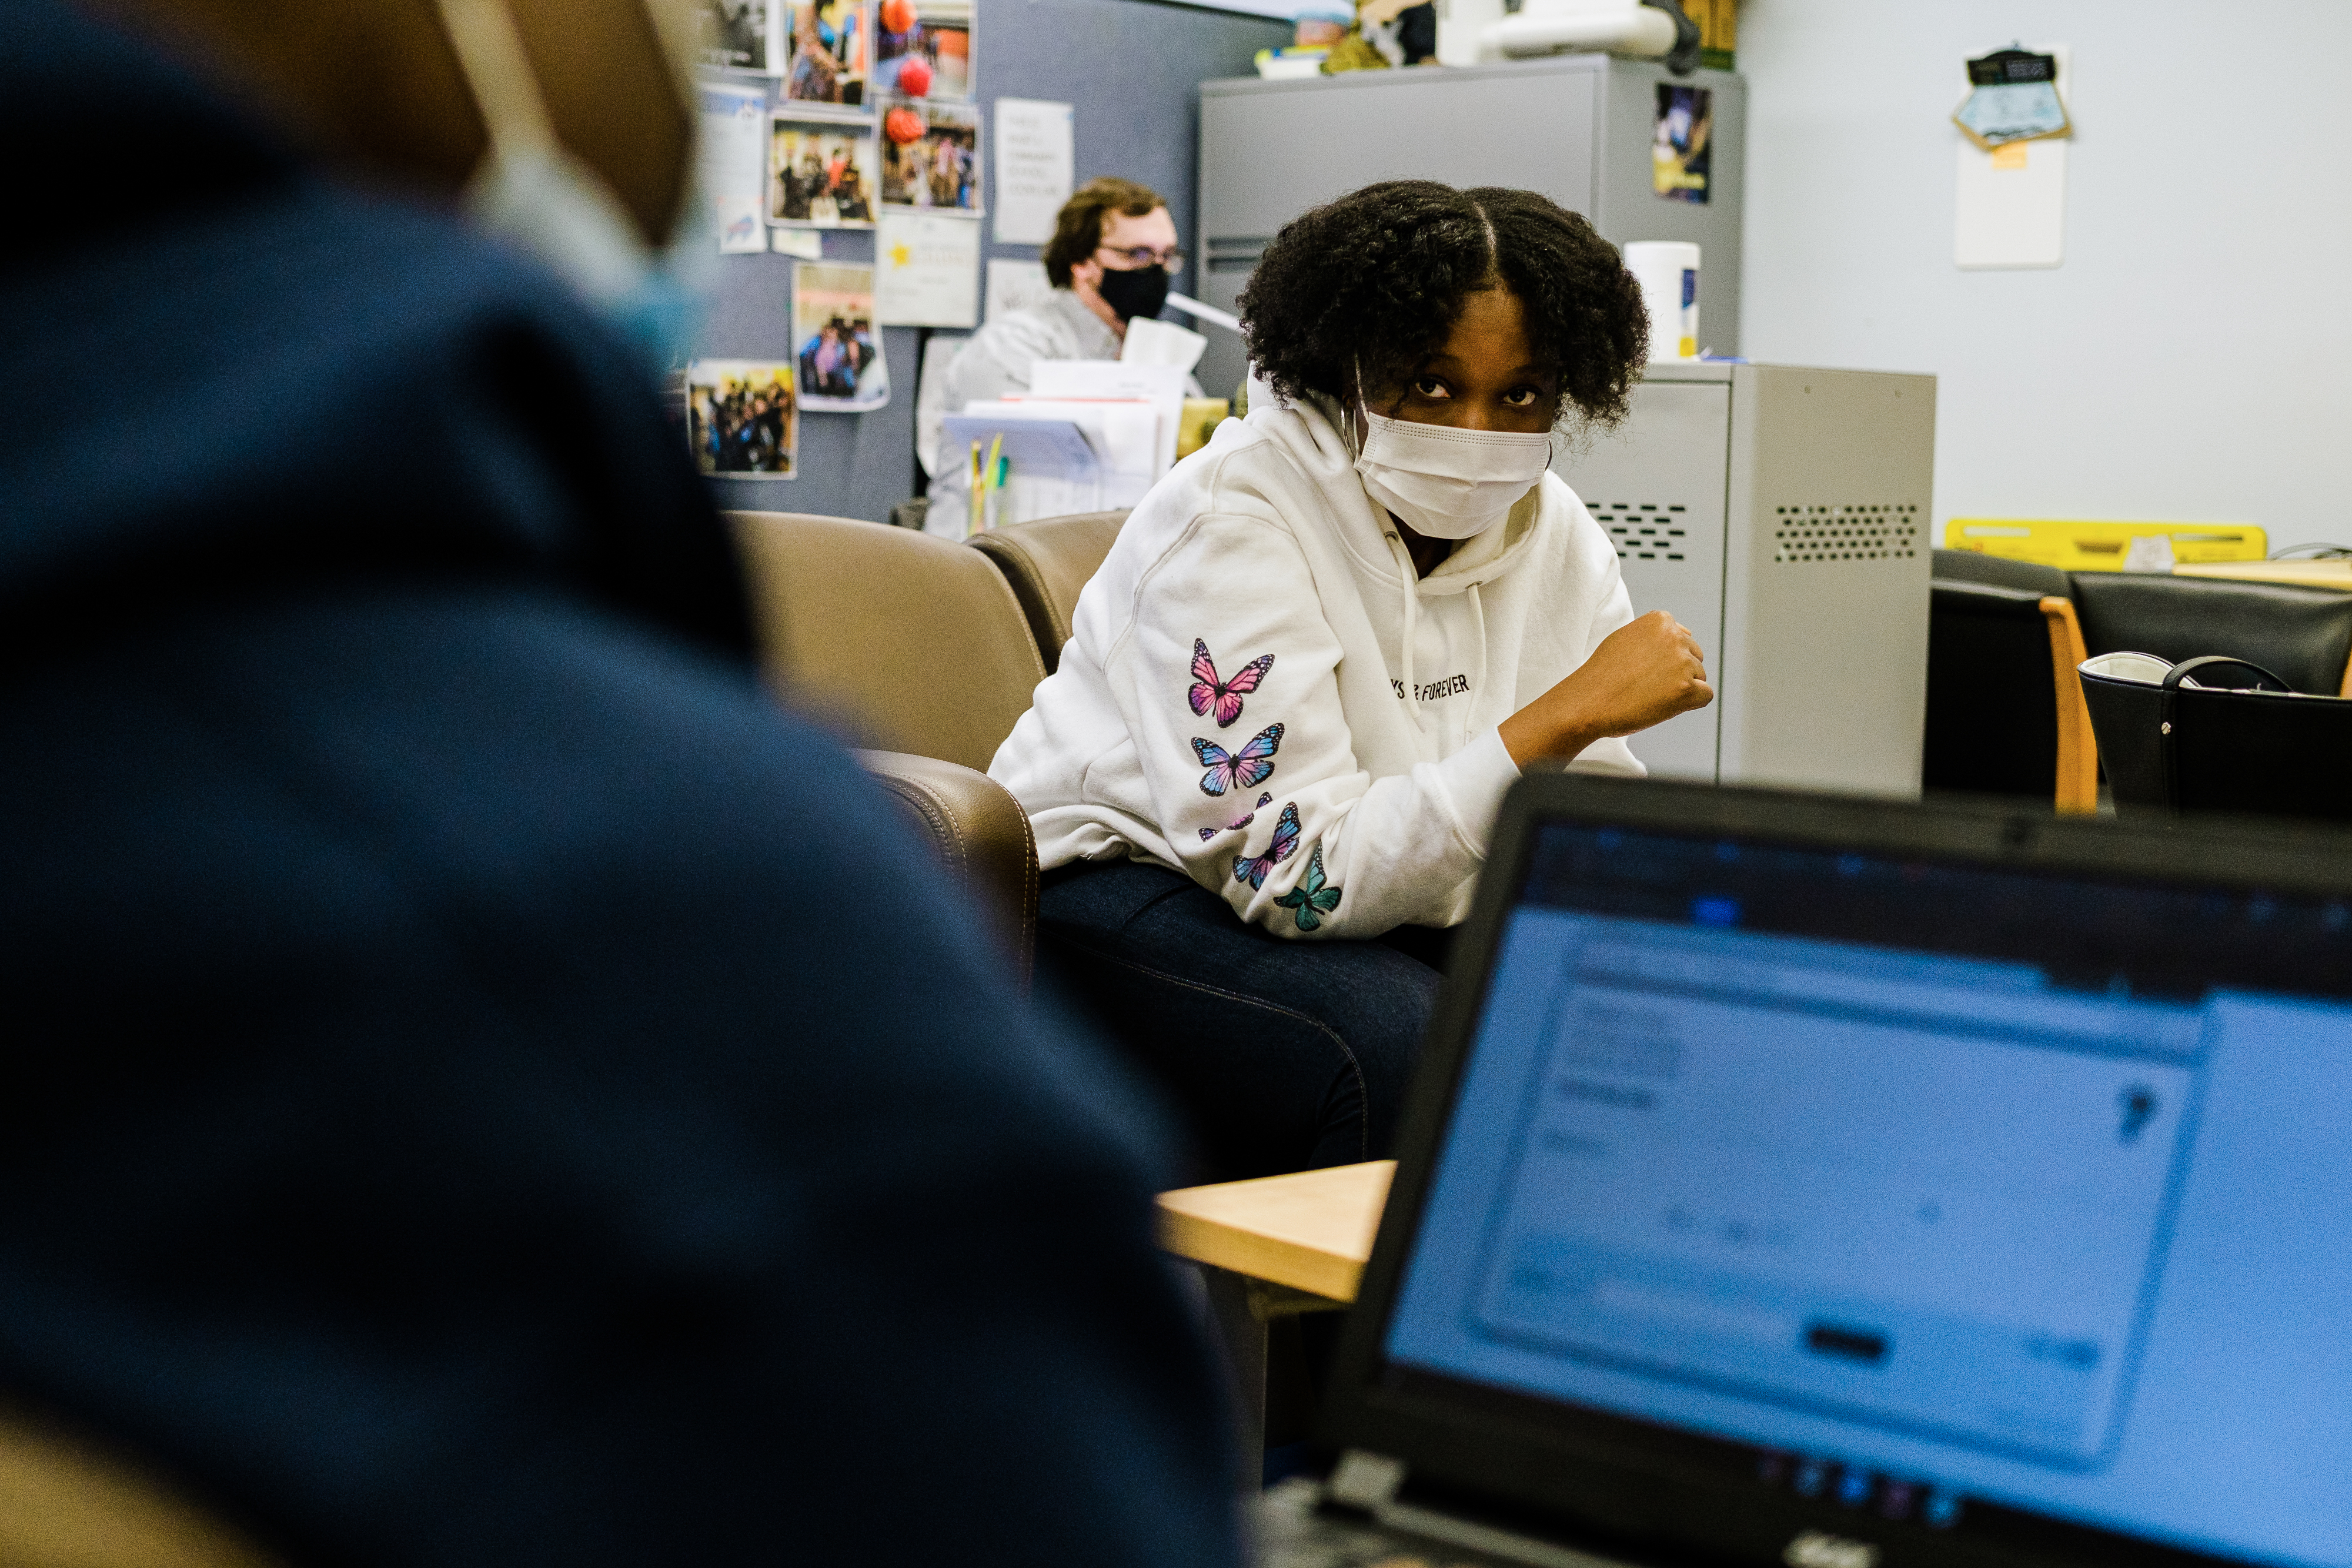 A young woman wearing a protective mask, white hoodie with blue and pink butterflies sits across from a young man wearing a blue hoodie working on a laptop. There is a male teacher sitting behind a desk in the background.